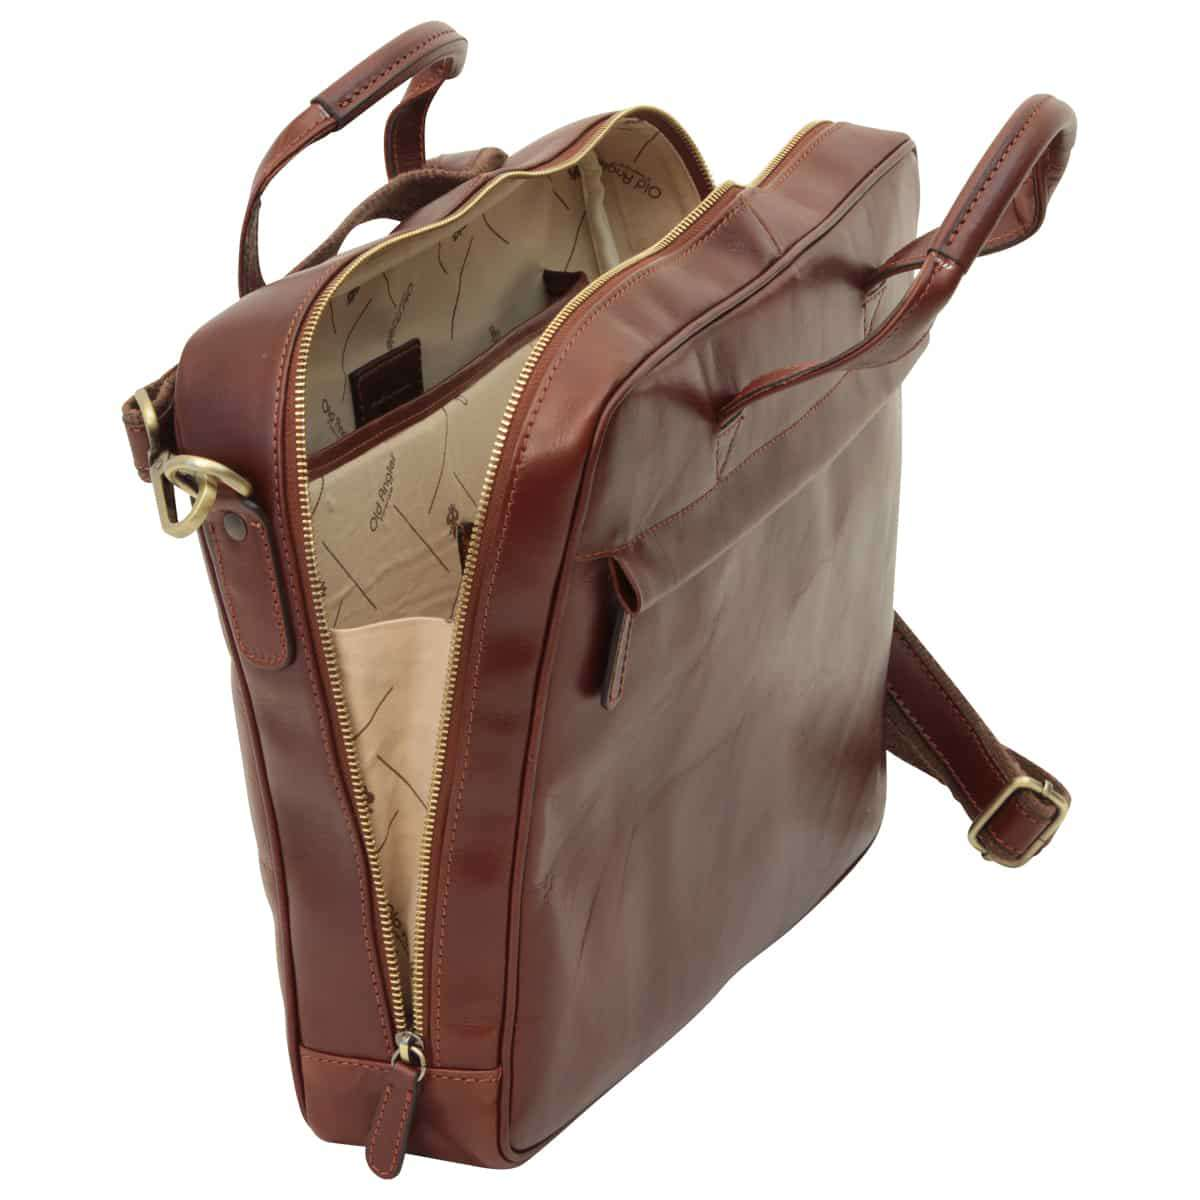 Leather Briefcase with zip closure - Brown | 409489MA UK | Old Angler Firenze